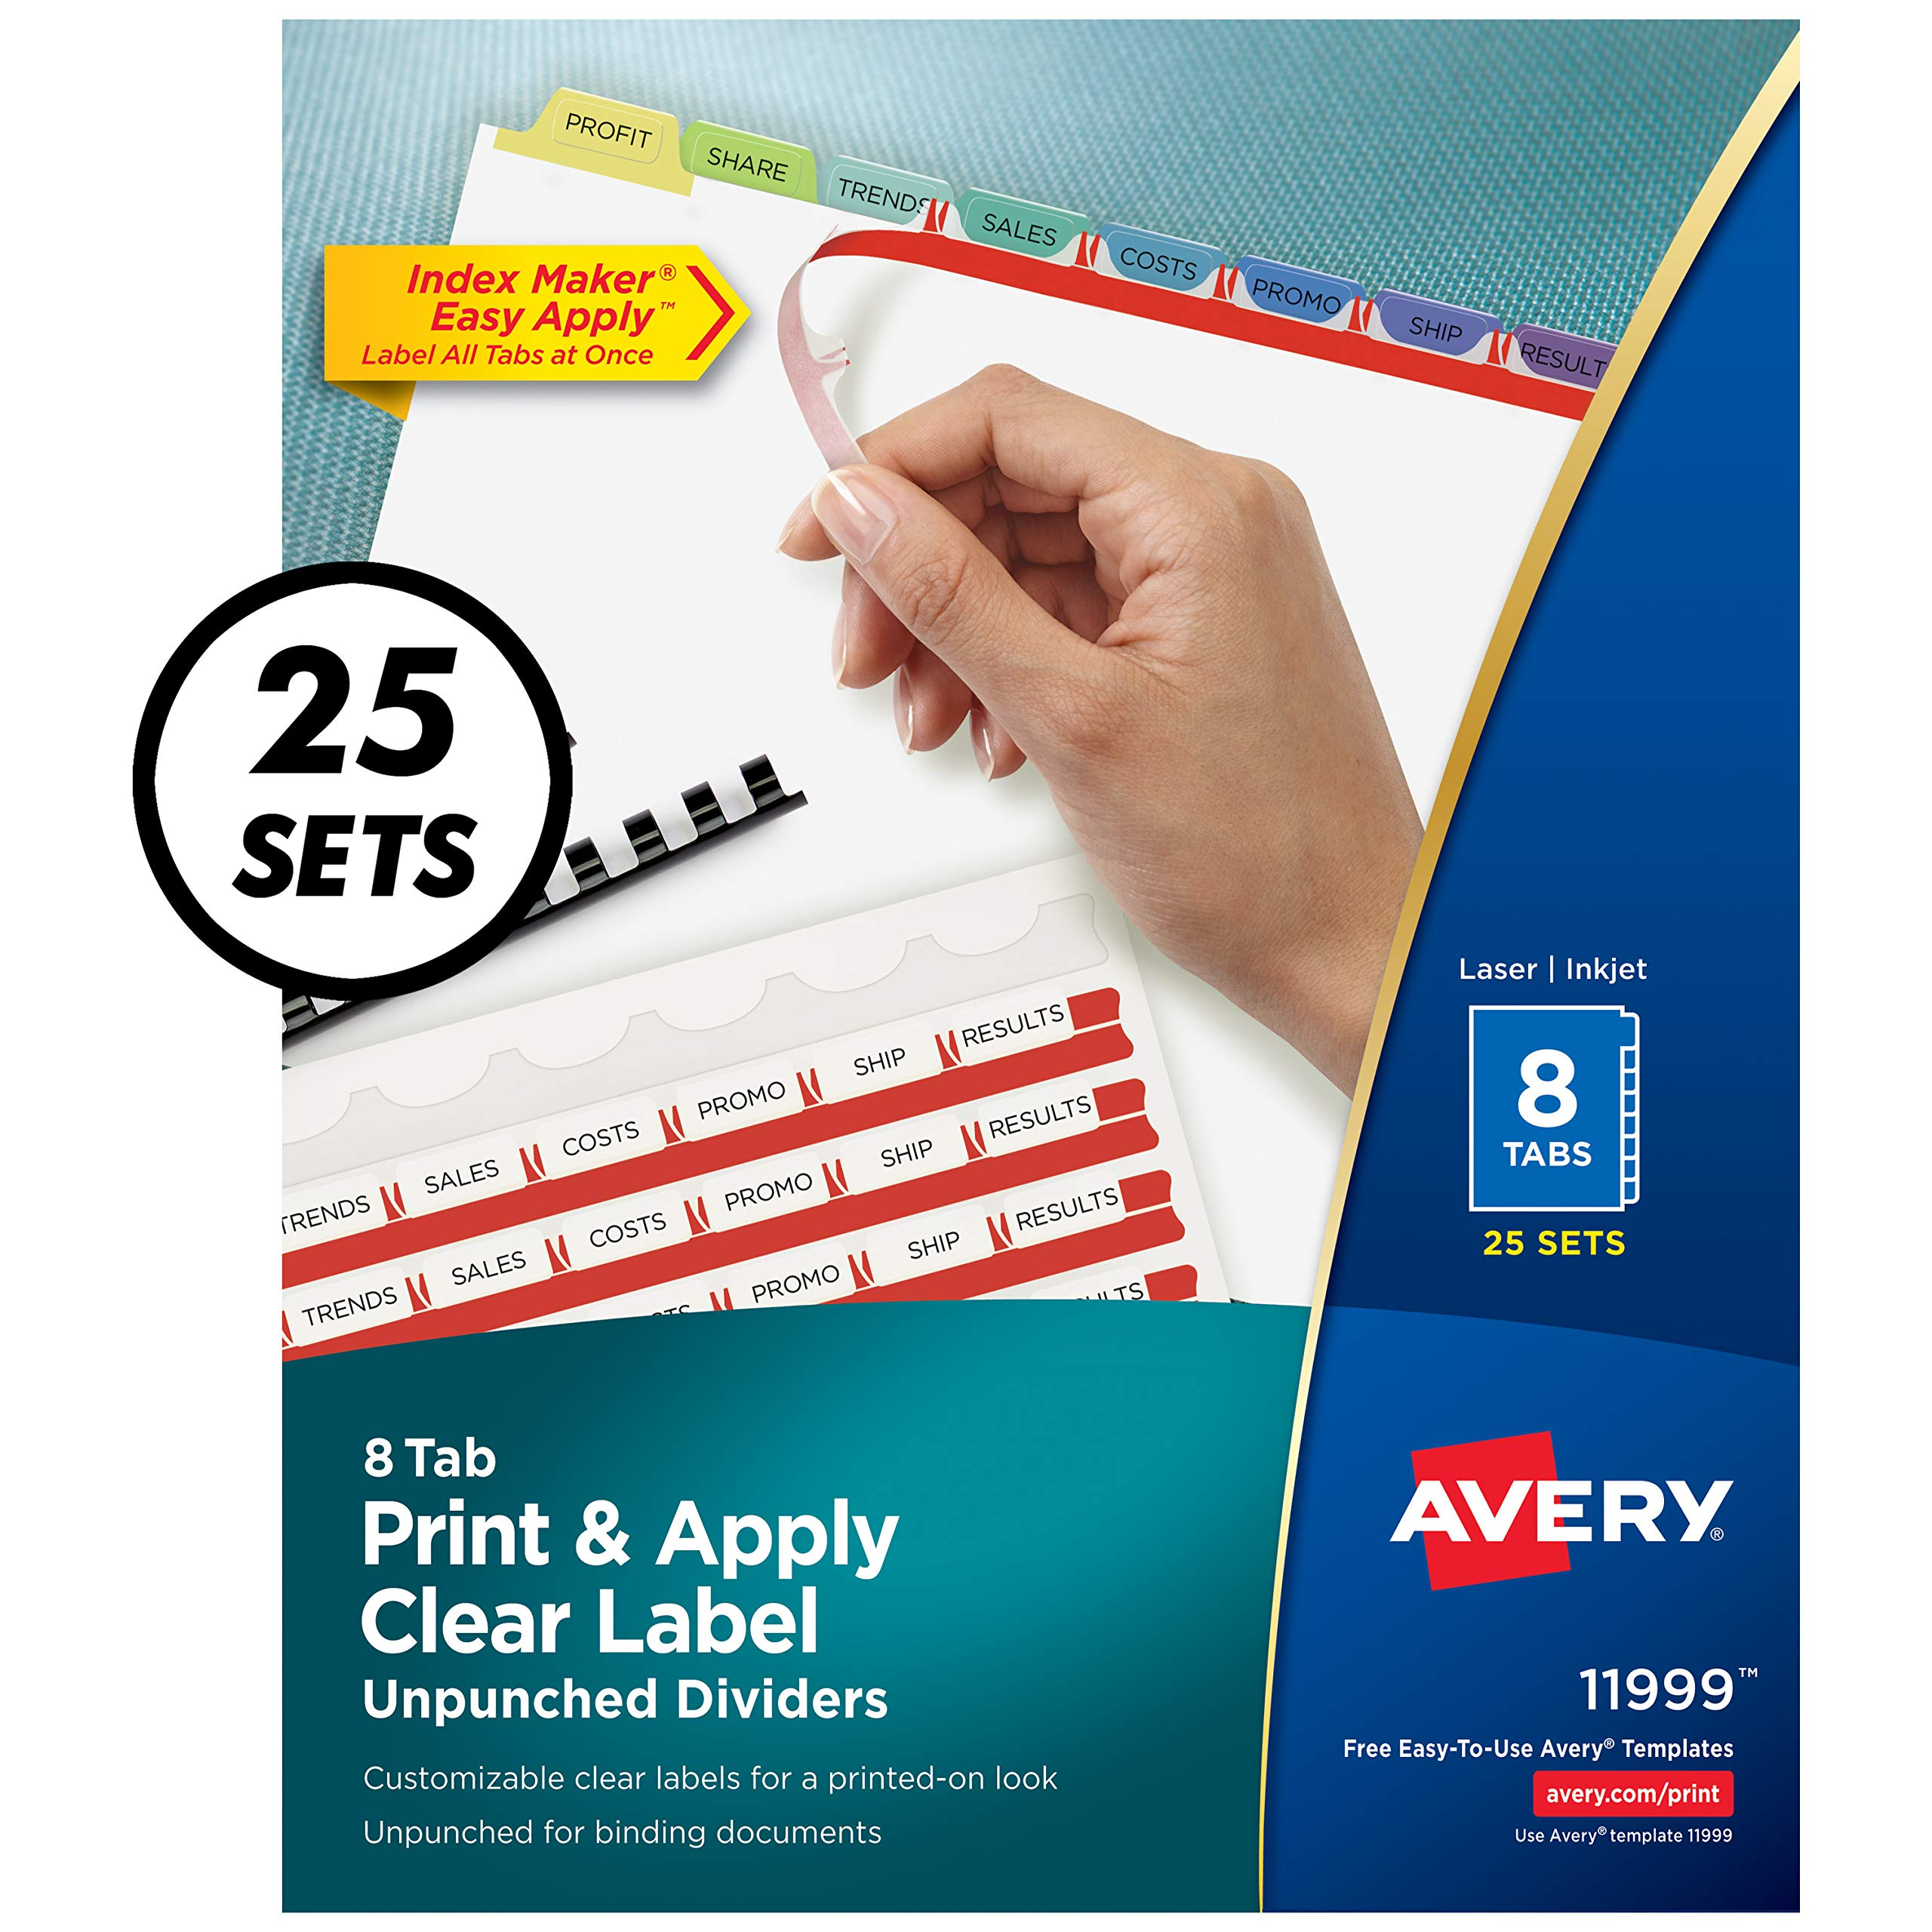 Avery 8-Tab Unpunched Binder Dividers, Easy Print & Apply Clear Label Strip, Index Maker, Pastel Tabs, 25 Sets (11999) by AVERY